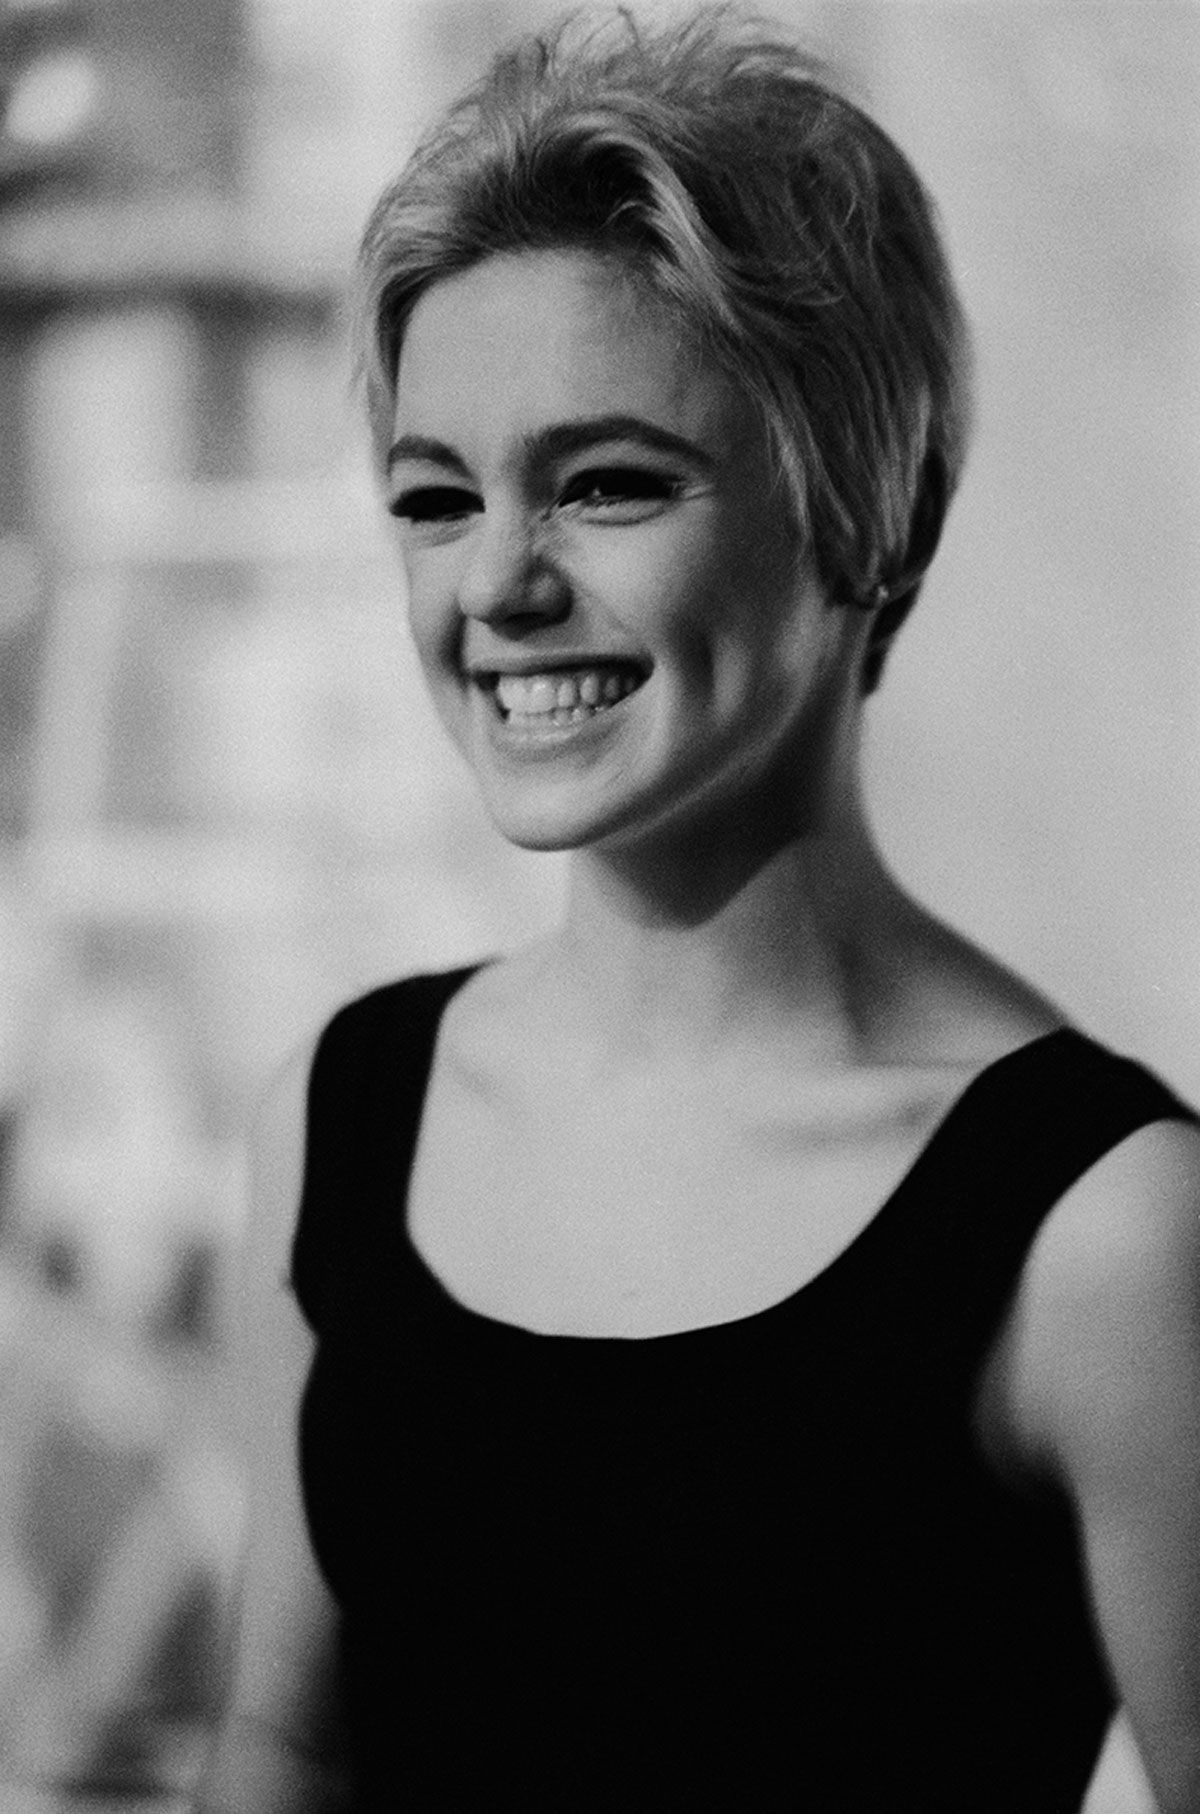 Edie Sedgwick 1965 Best Short Hair Cuts The Cut